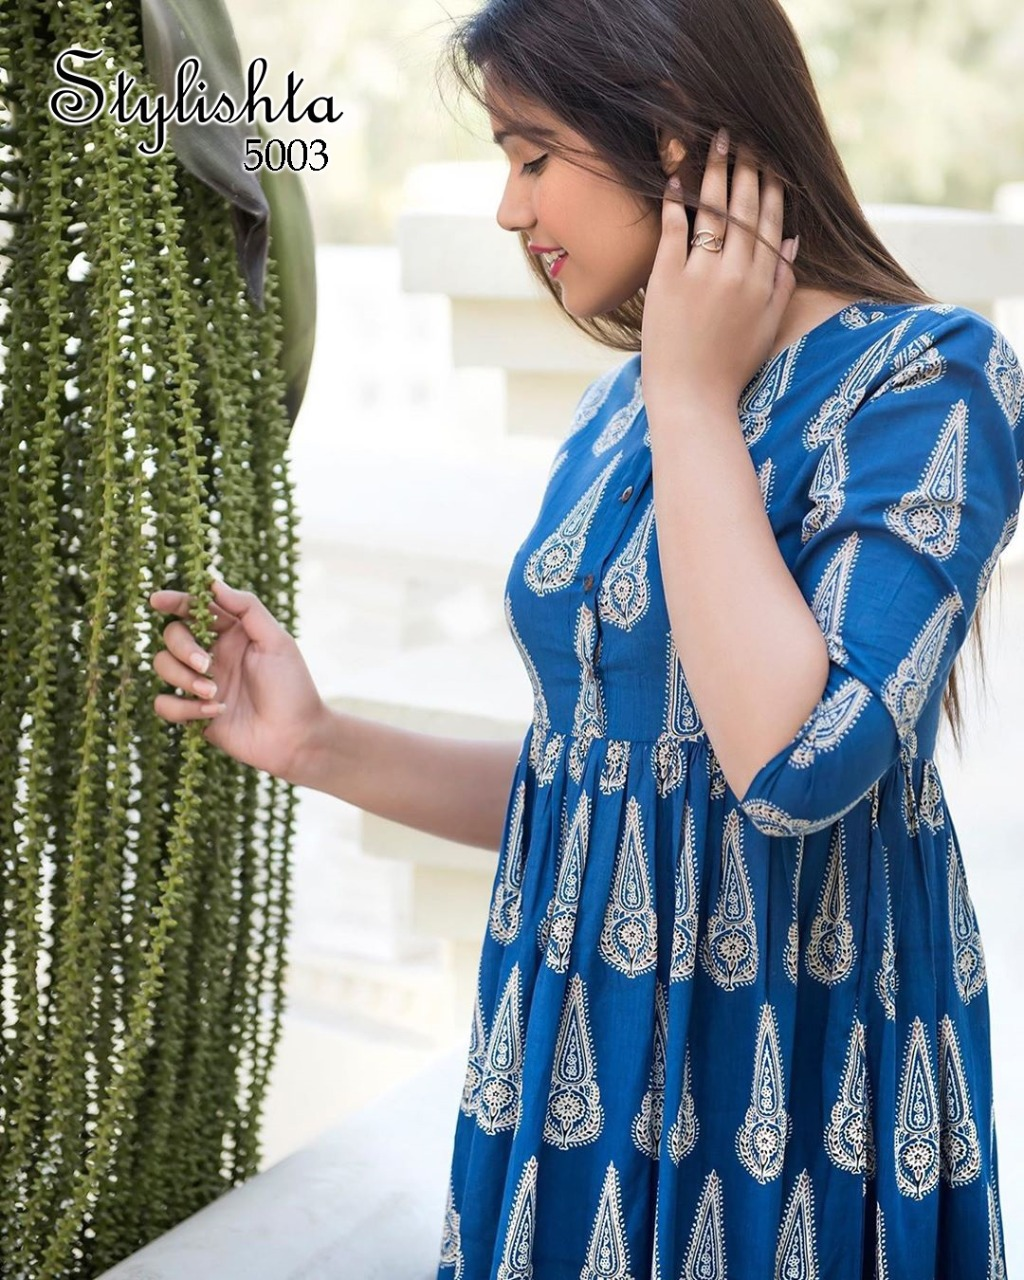 Tejaswee Stylishta Vol 3 Kurti Wholesale Catalog 6 Pcs 5 - Tejaswee Stylishta Vol 3 Kurti Wholesale Catalog 6 Pcs